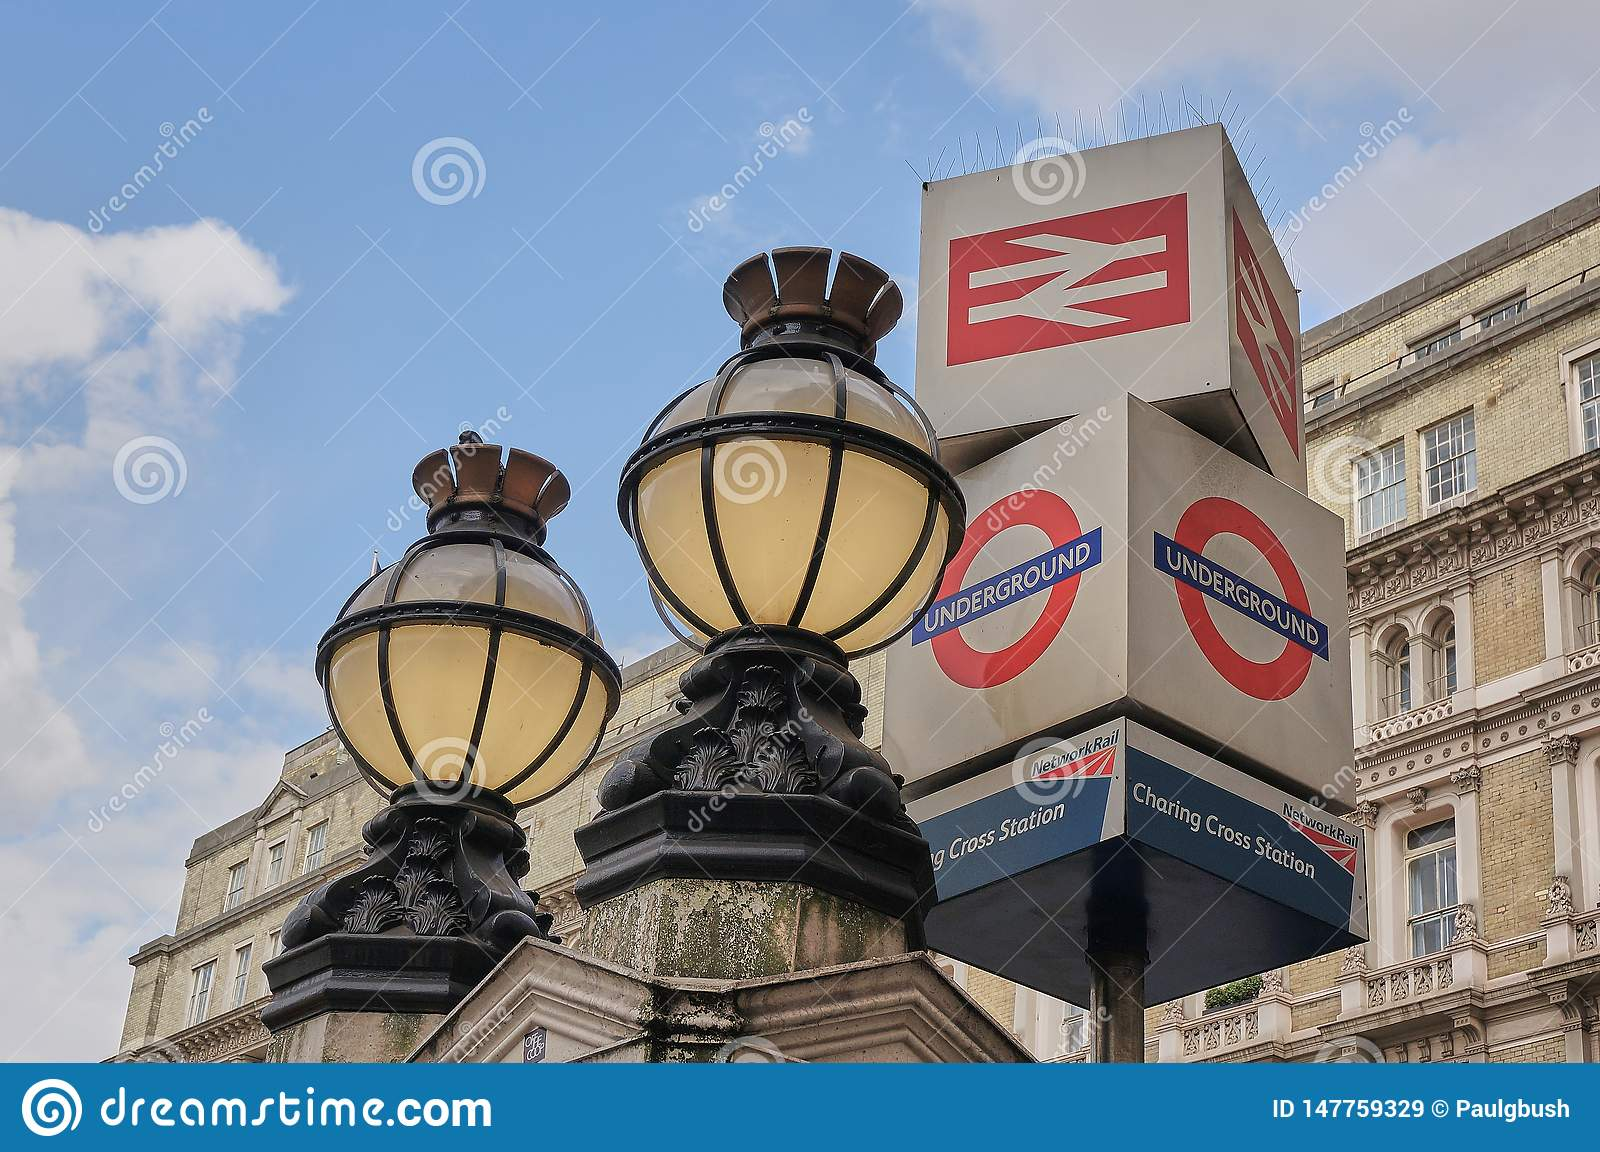 Victorian Globe Lights and Underground Sign outside Charing Cross Train Station London